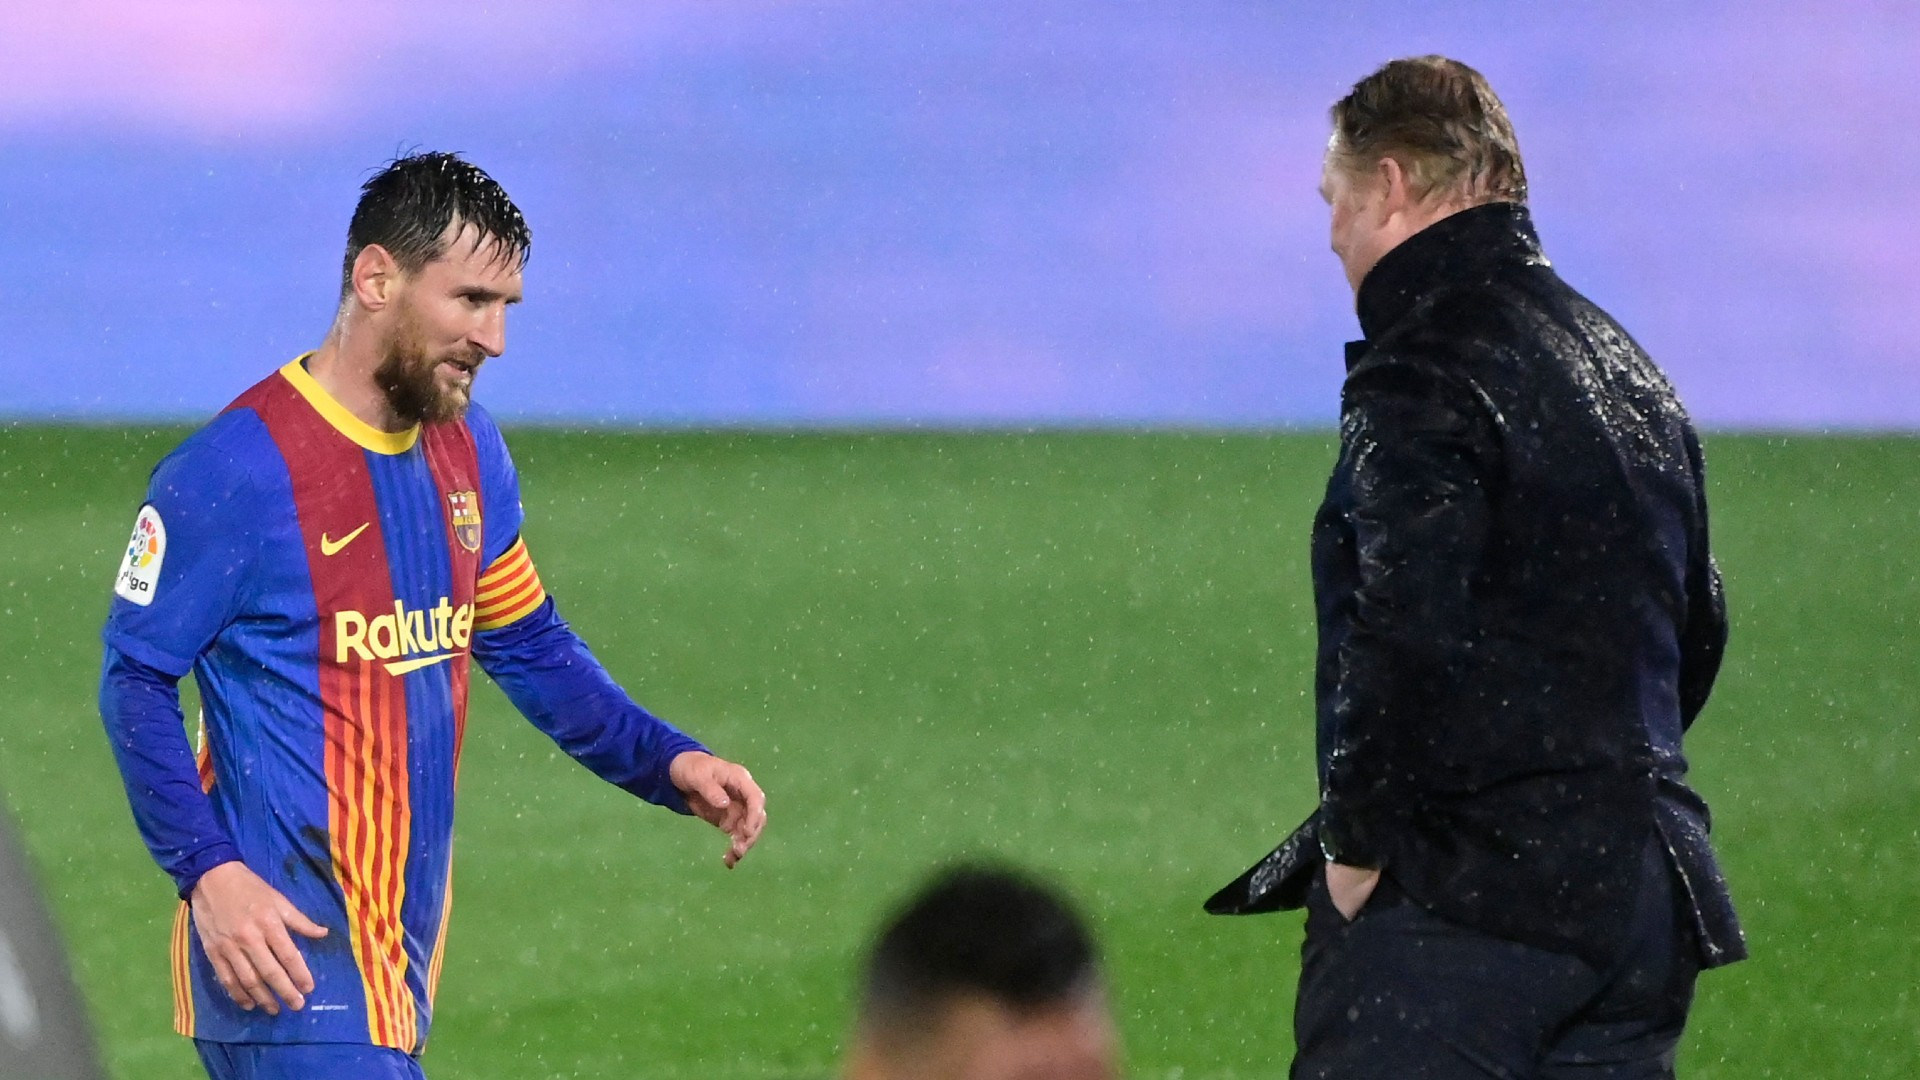 Barcelona hopeful Messi has not played his last Clasico